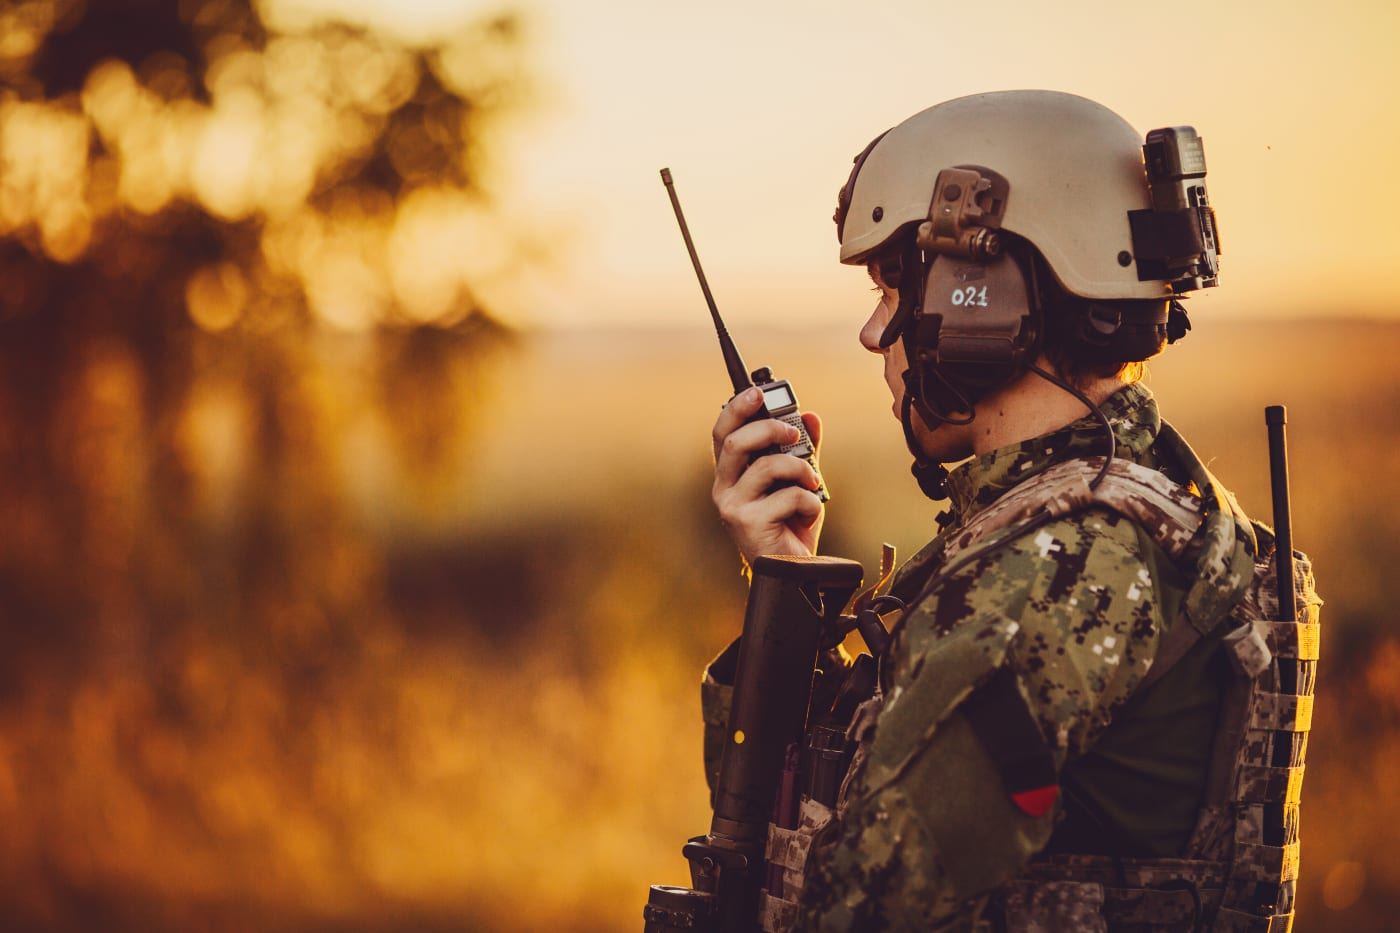 Fibre optics are finding applications in all industries including military